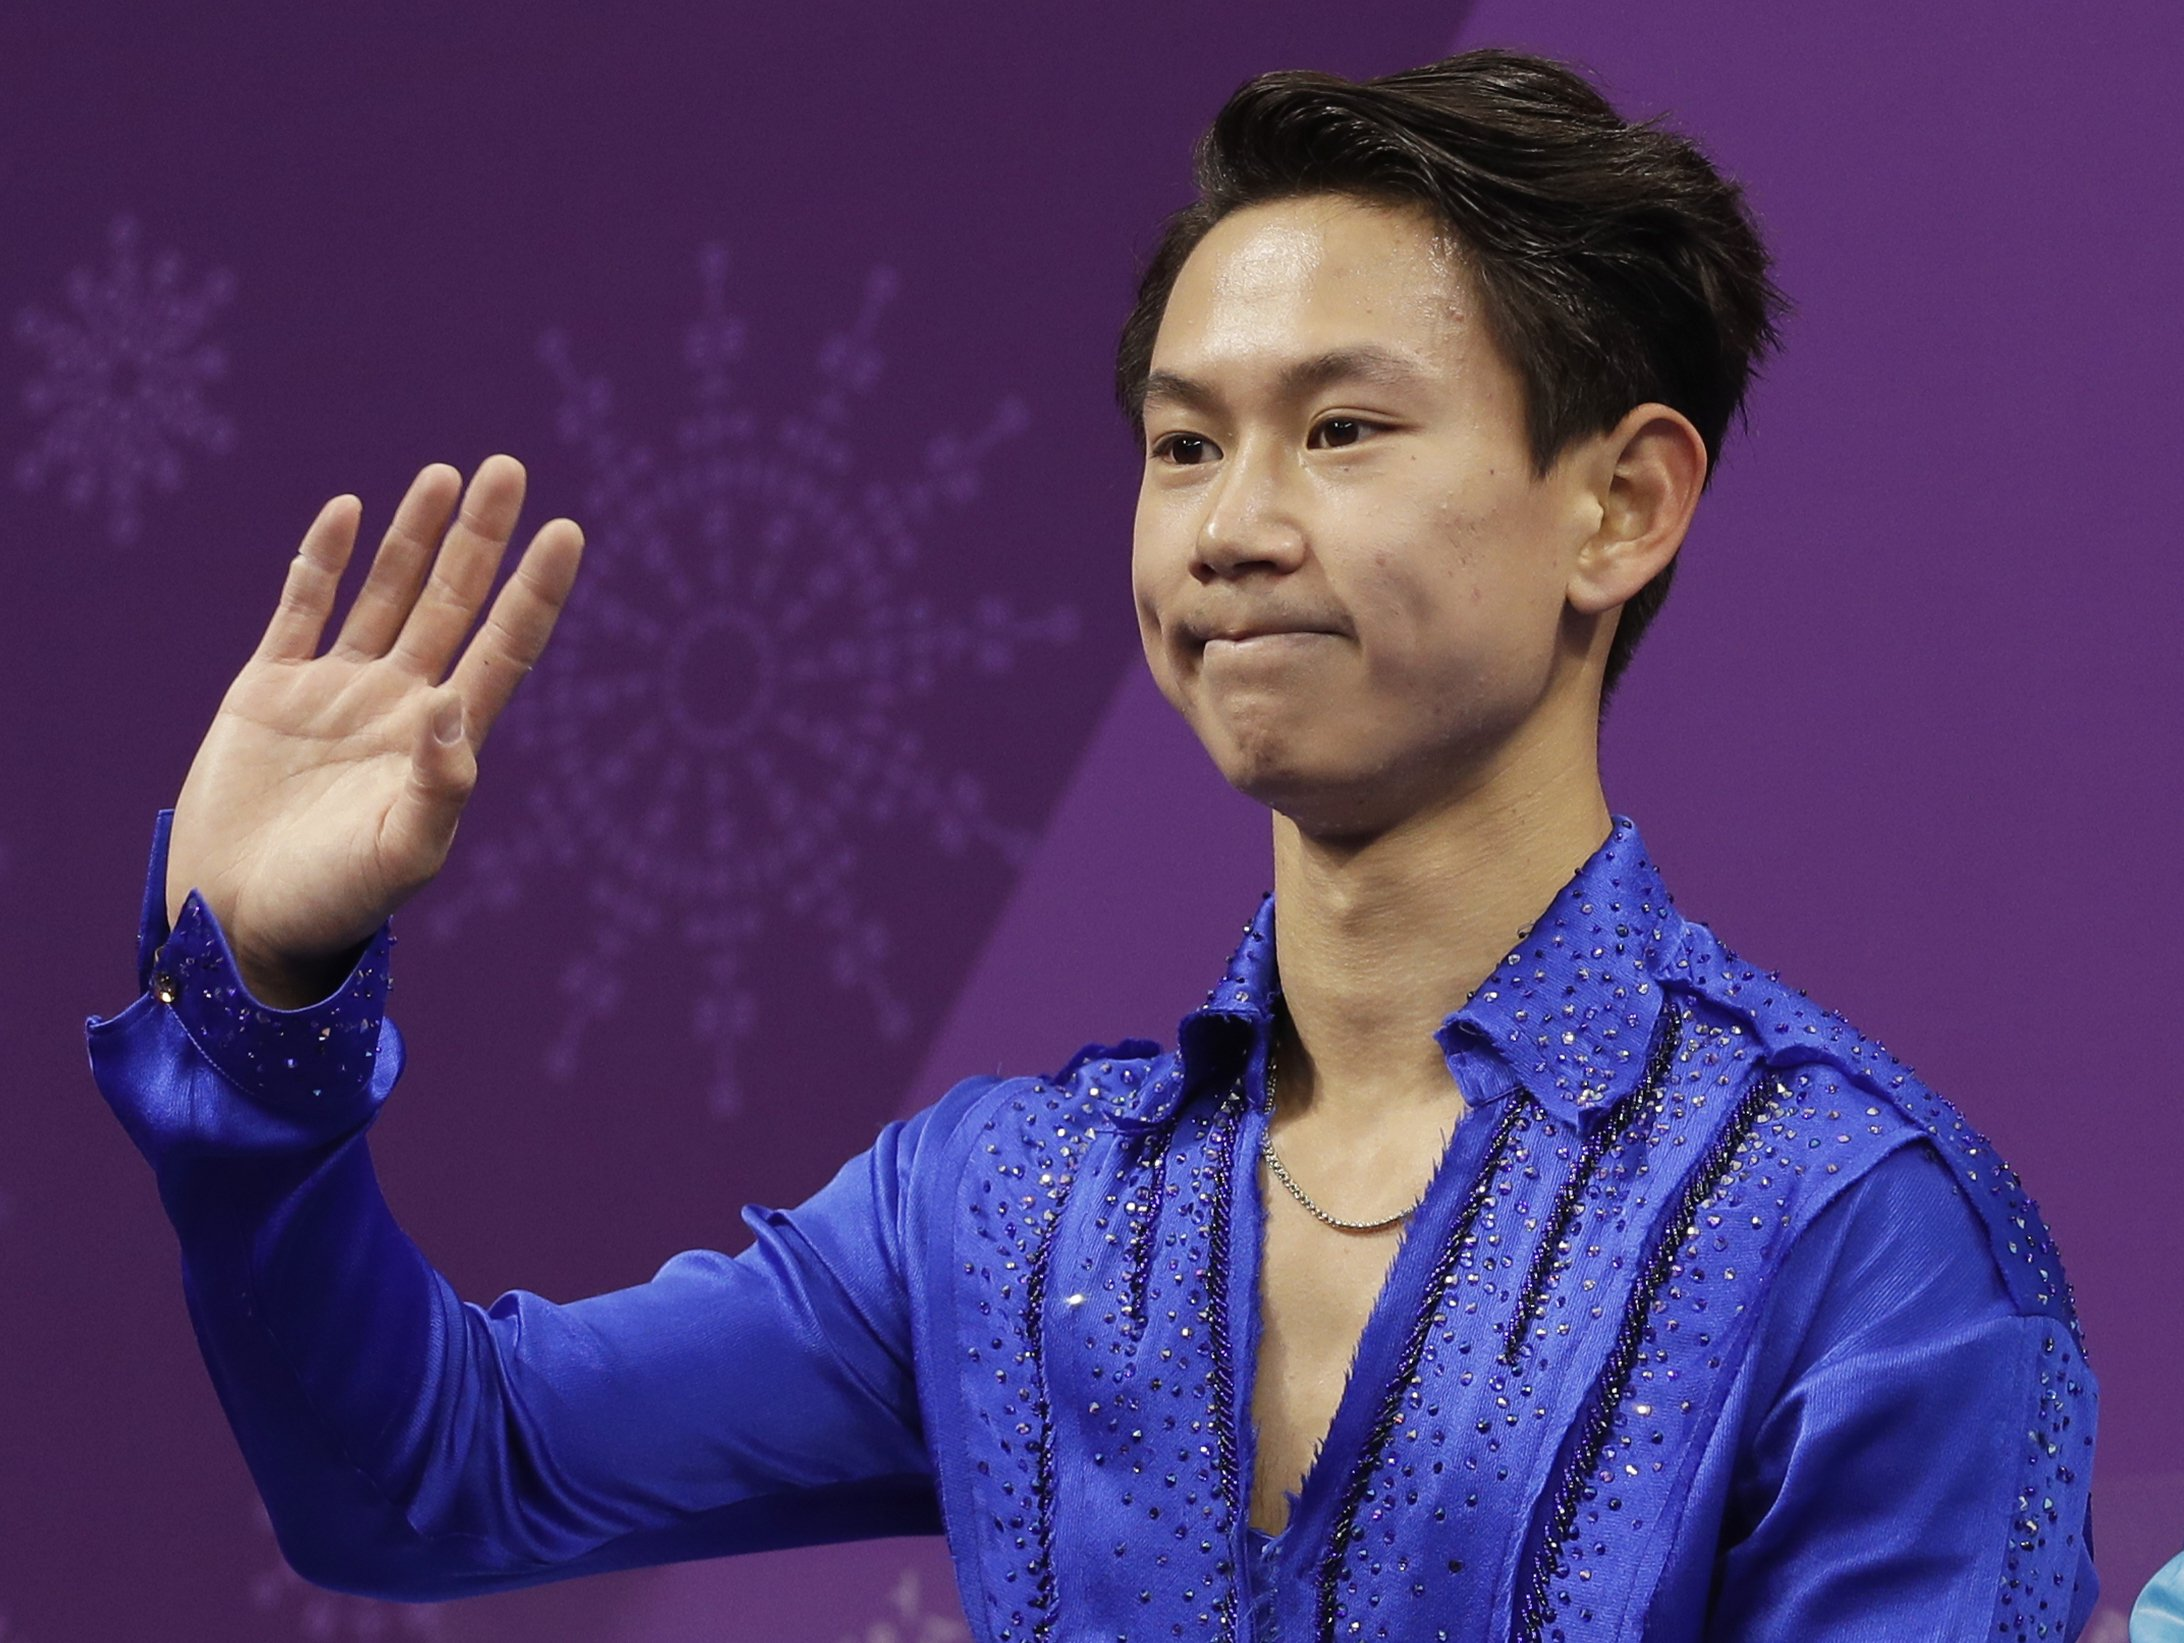 Suspect confesses in killing of Olympic figure skater